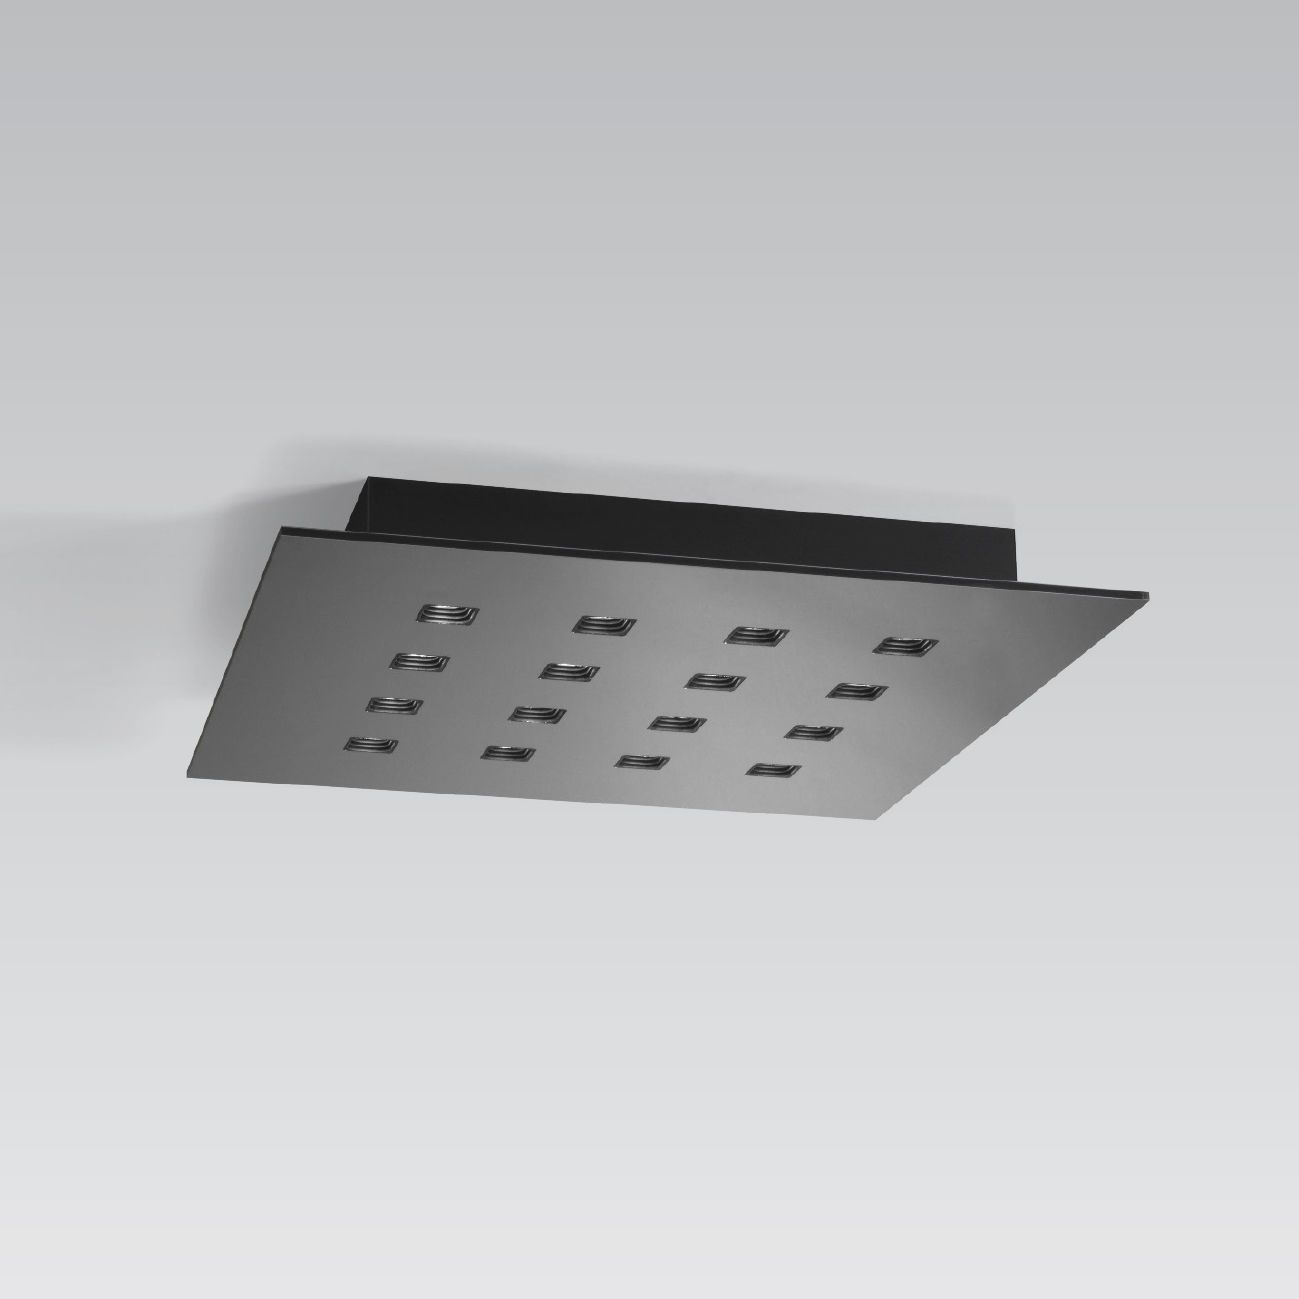 Recessed ceiling light fixture fluorescent led square discover all the information about the product recessed ceiling light fixture fluorescent led square combo xenon architectural lighting and find arubaitofo Images